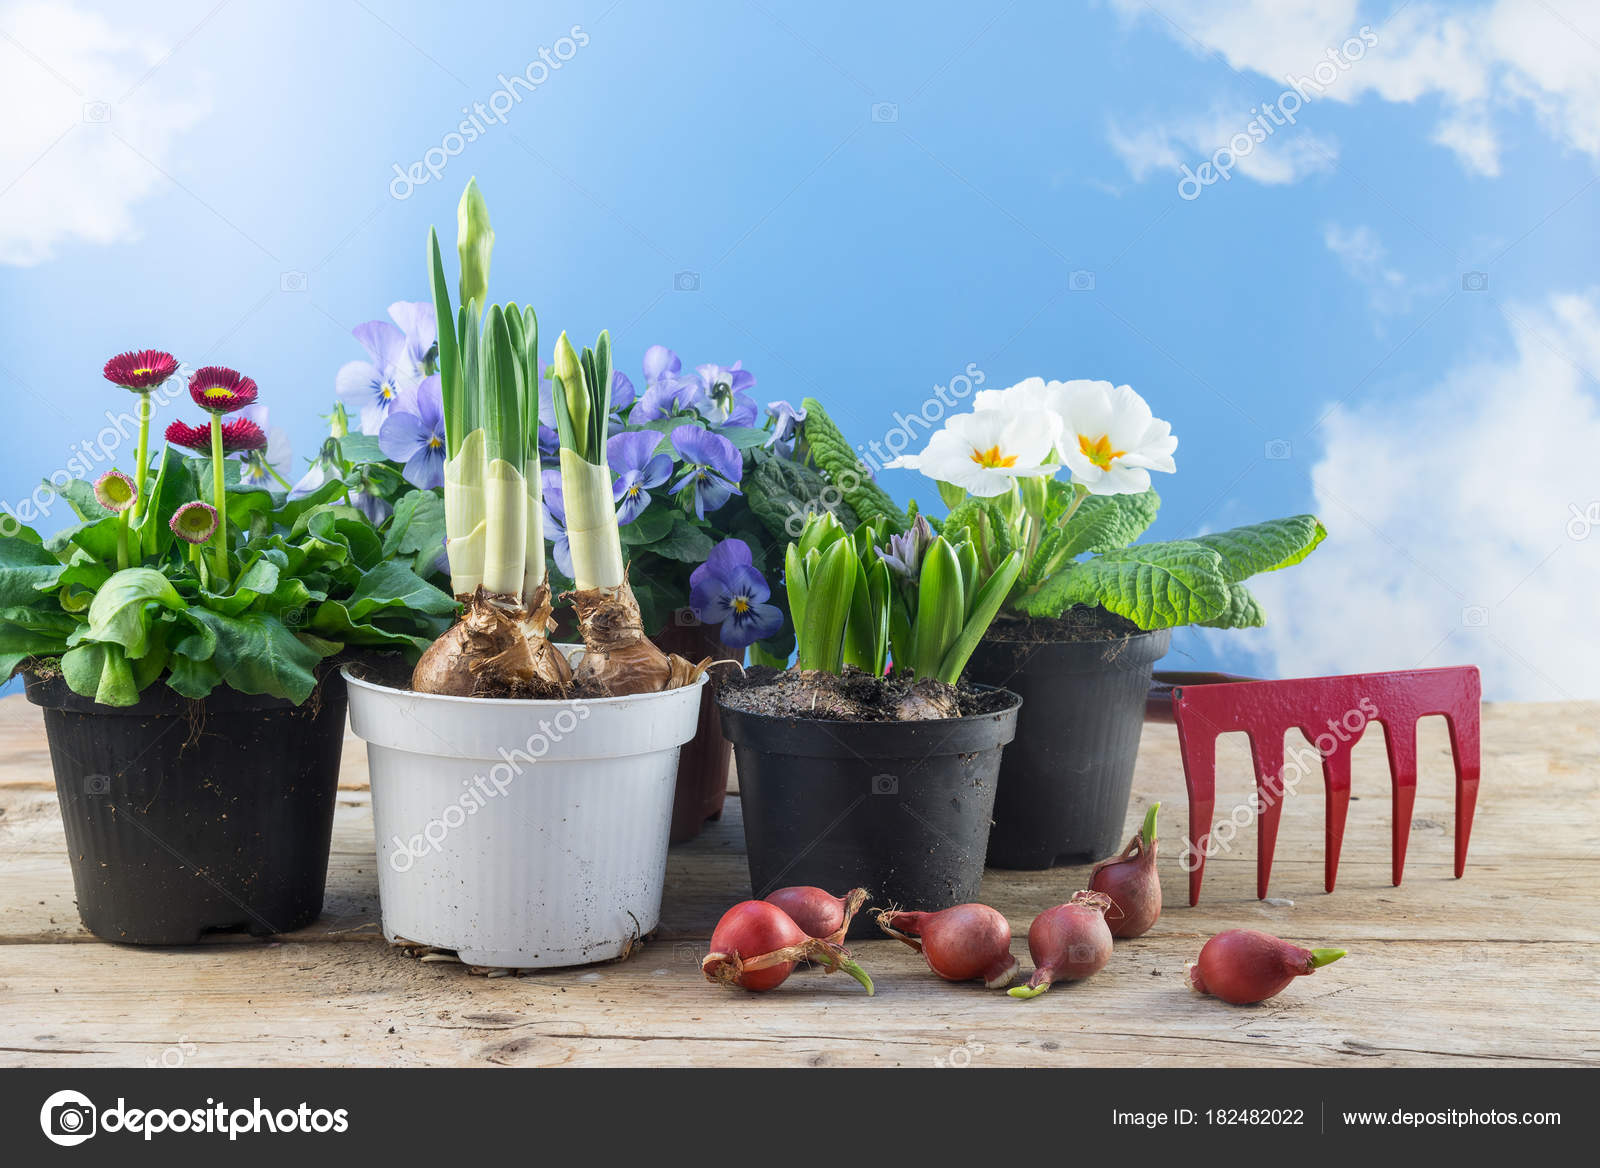 Spring Flowers In Pots And Some Flower Bulbs On Rustic Wooden Boards